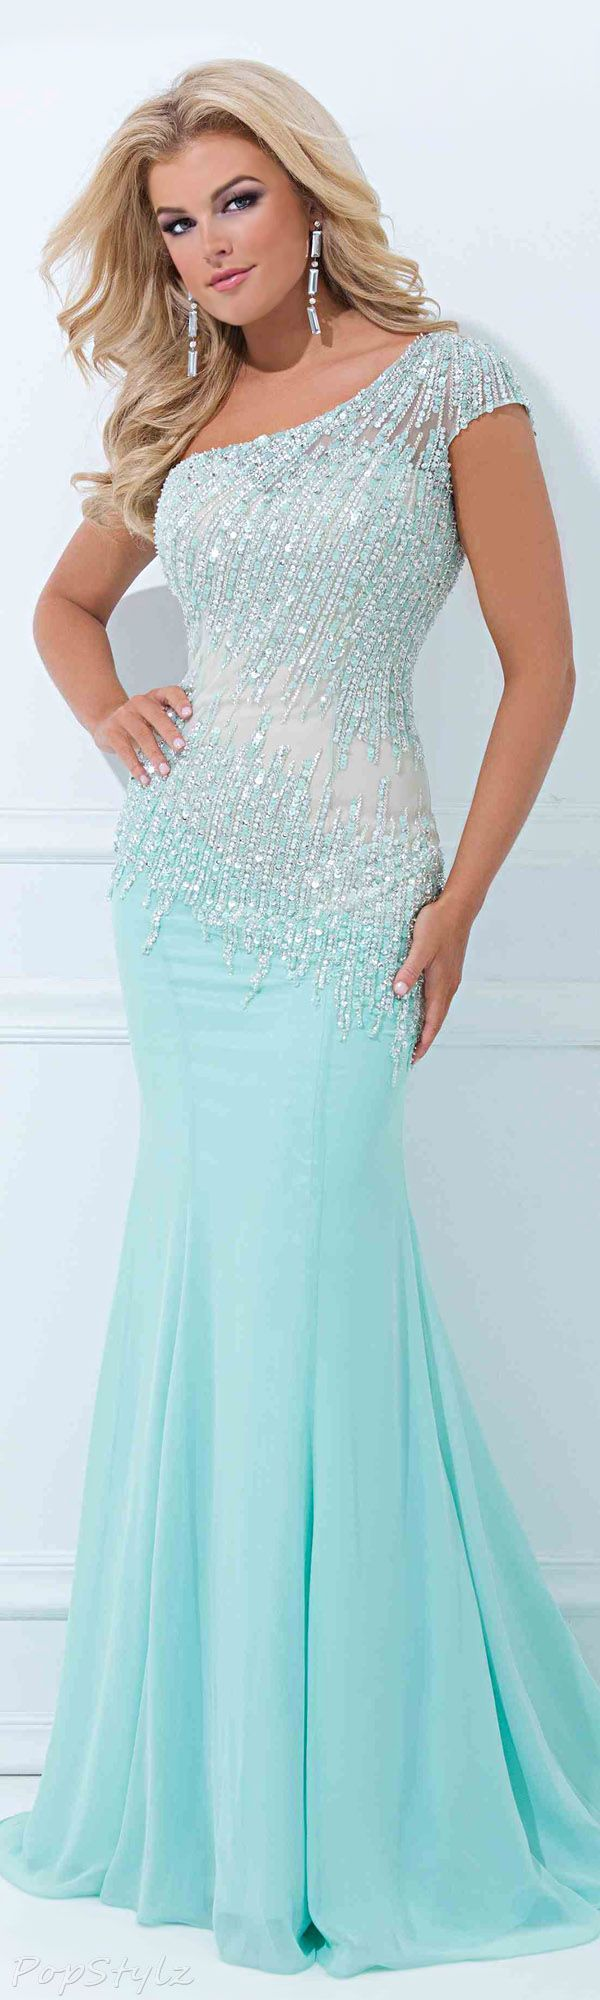 evening gowns 41 (how to look smashing in an evening gown)